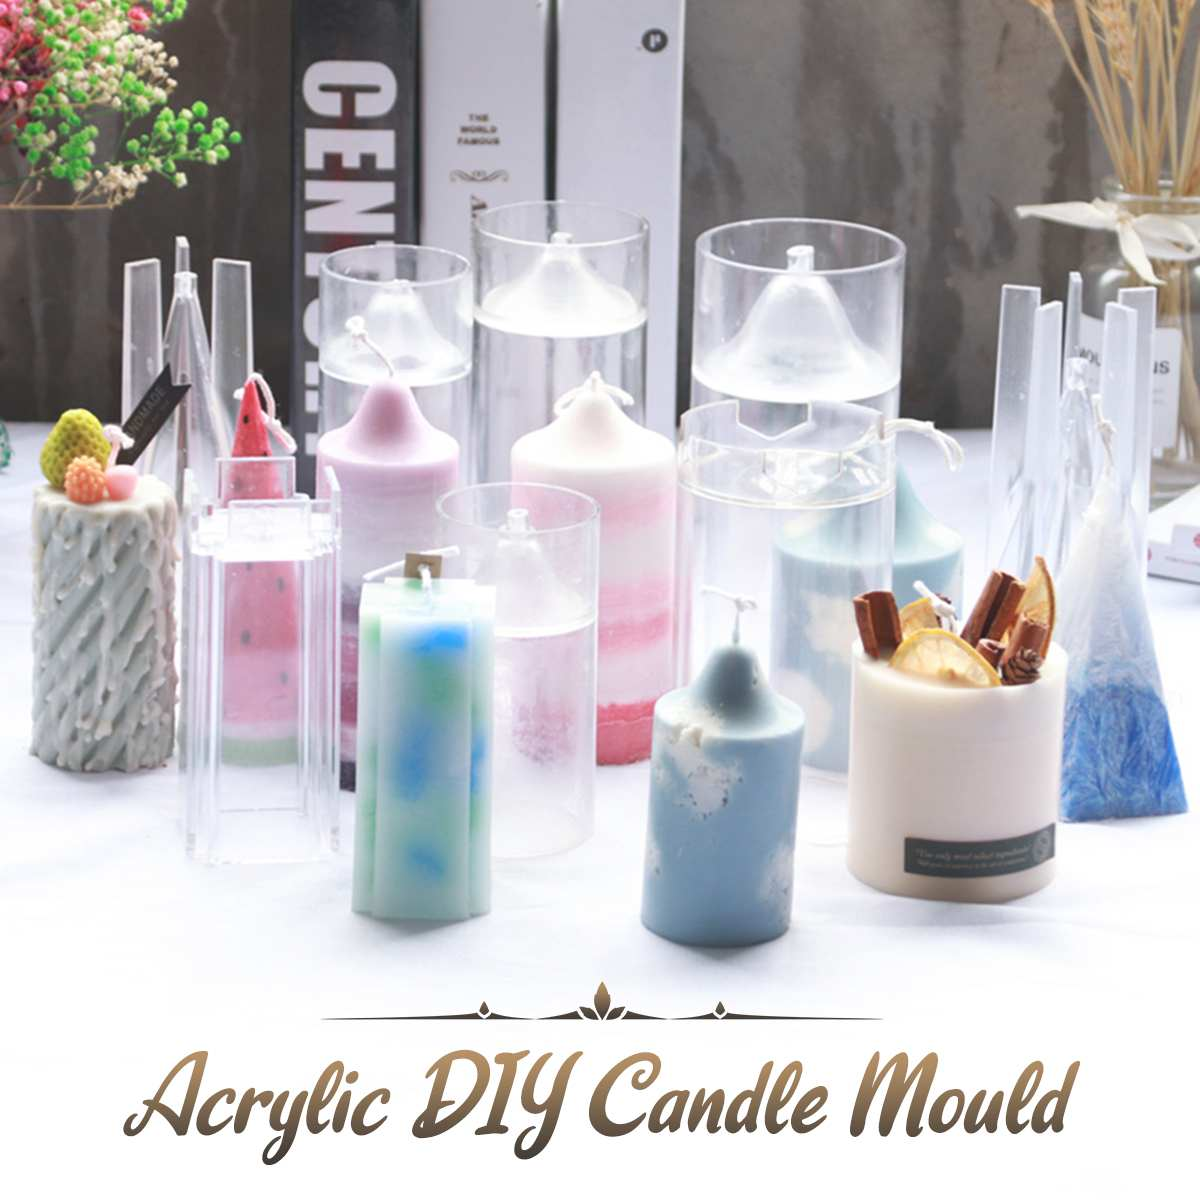 1pcs Reusable Candle Mould Handmade Craft Fashion Christmas Aroma Candle Gypsum Making Candle Mold DIY Homemade Soap Mould